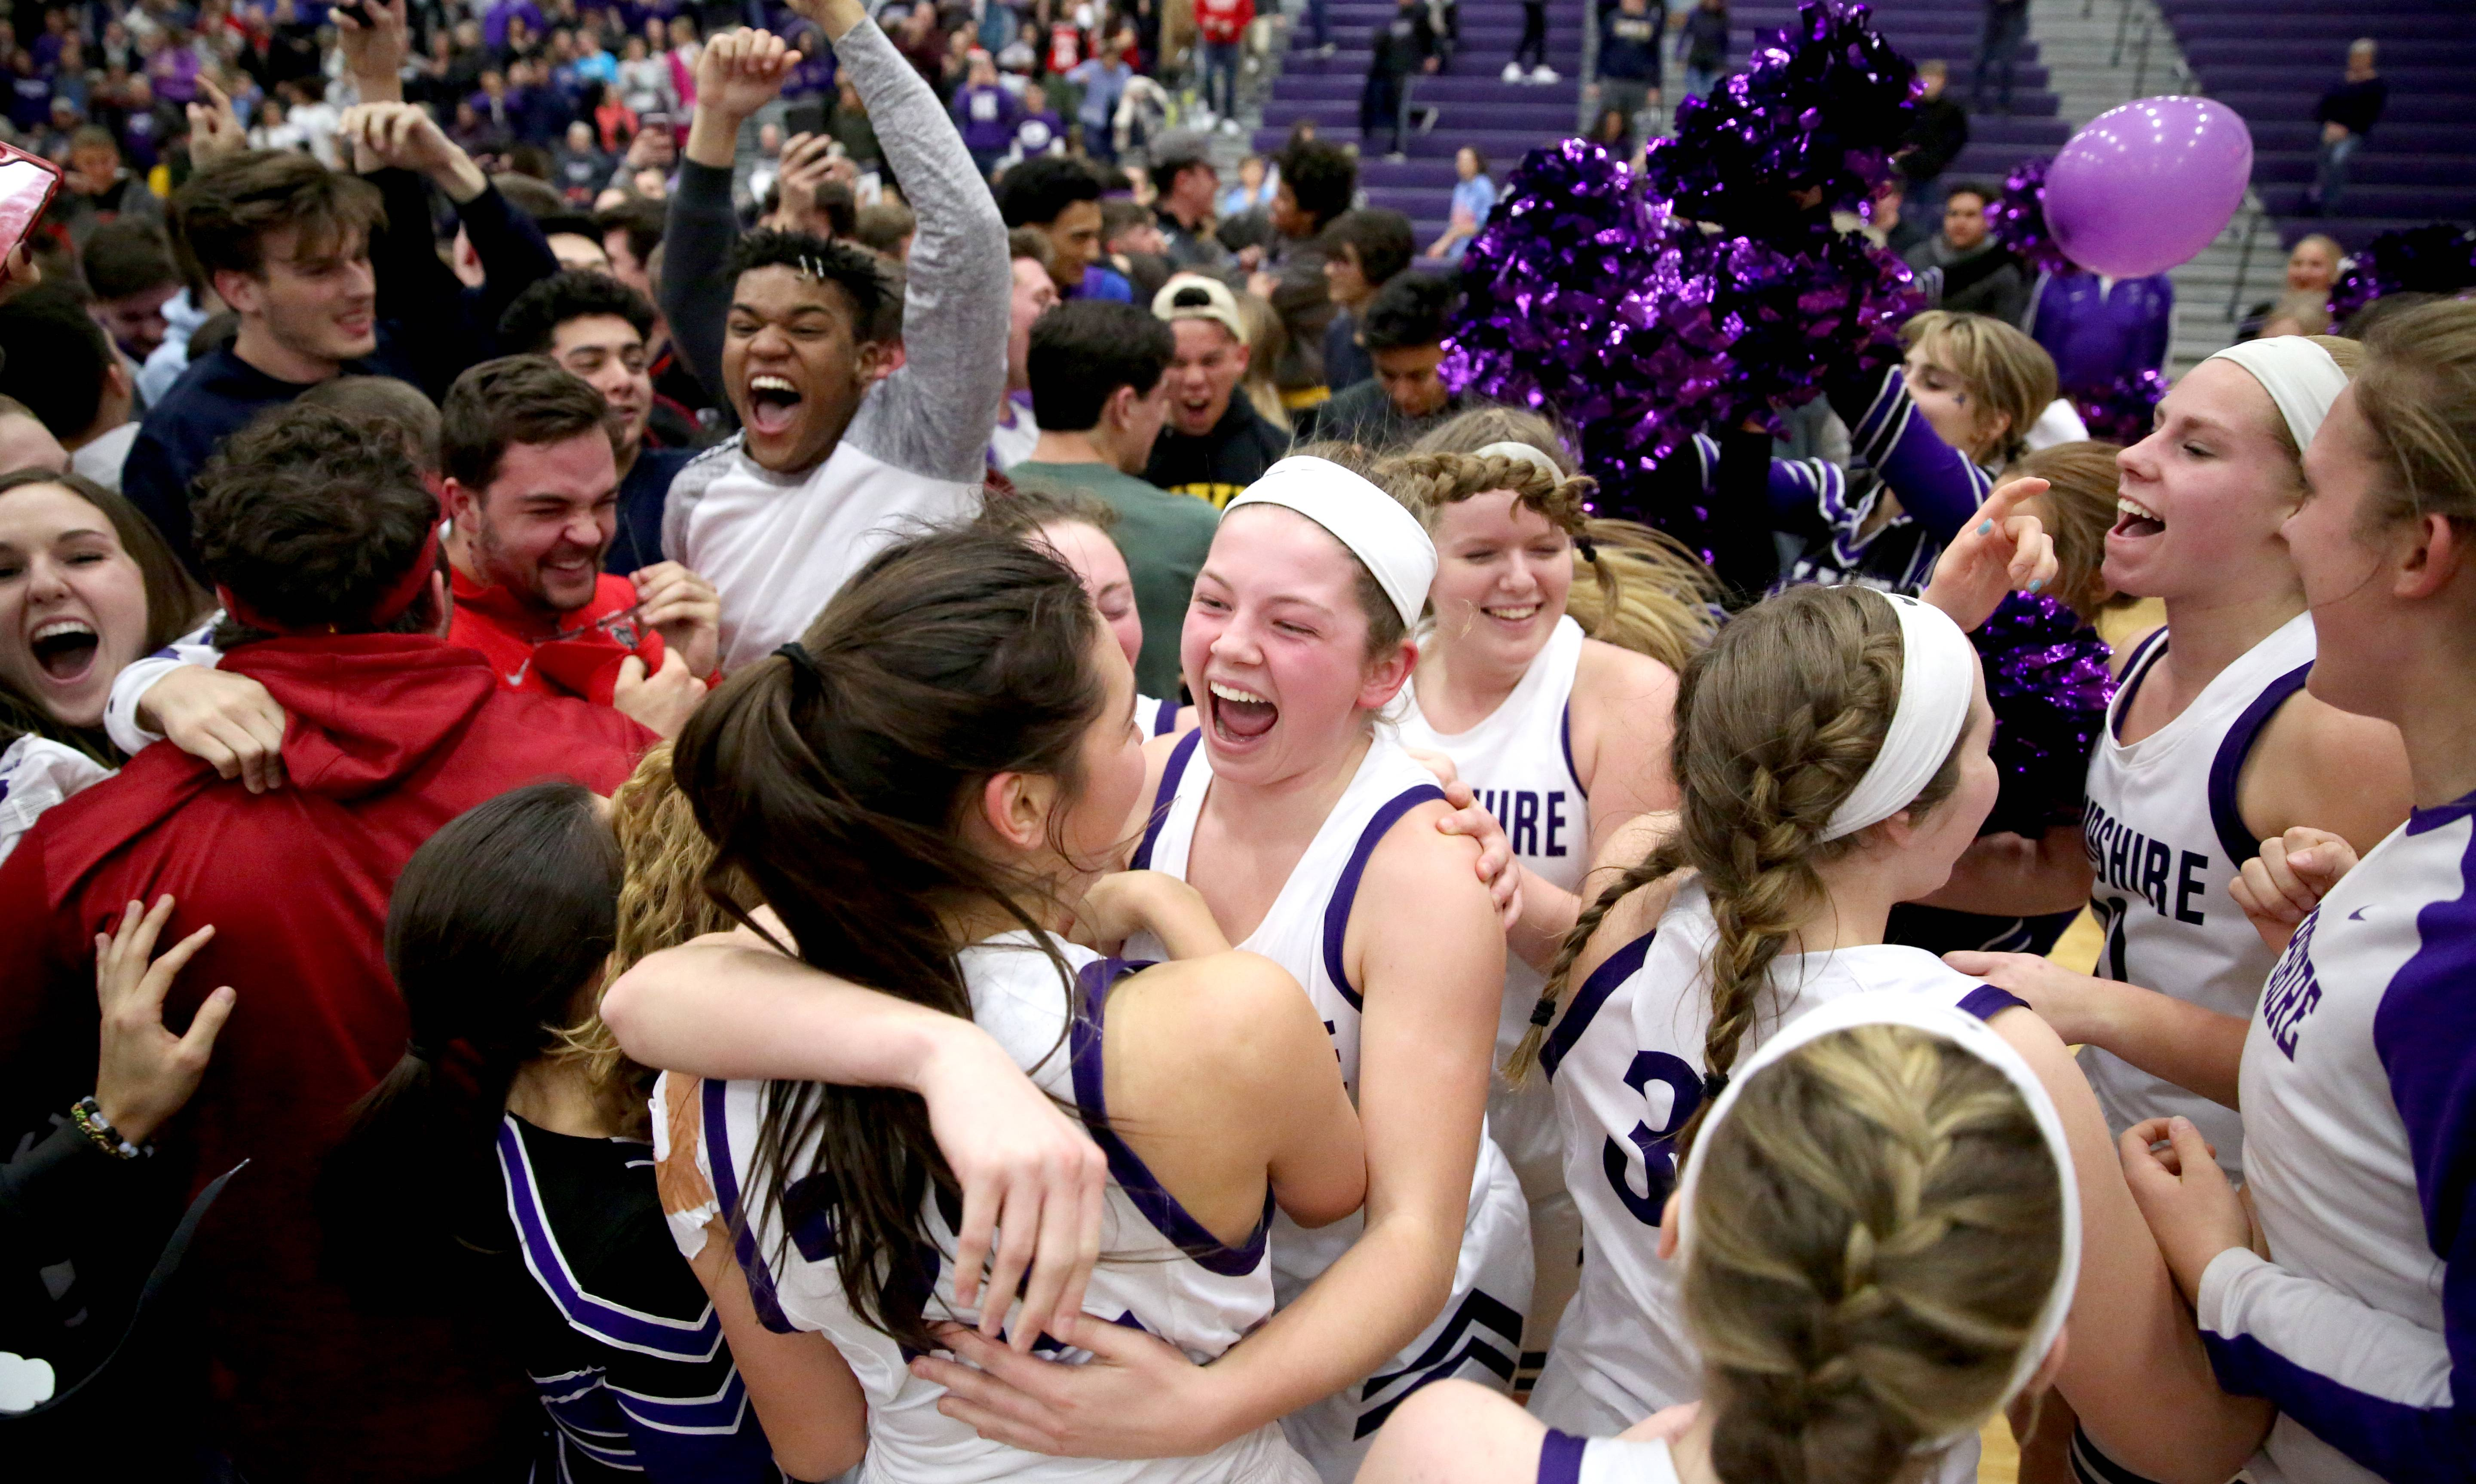 Hampshire's fans celebrate with players following win over Dundee-Crown at Hampshire Friday night. The Whip-Purs clinched a Fox Valley Conference title with the 43-38 victory.